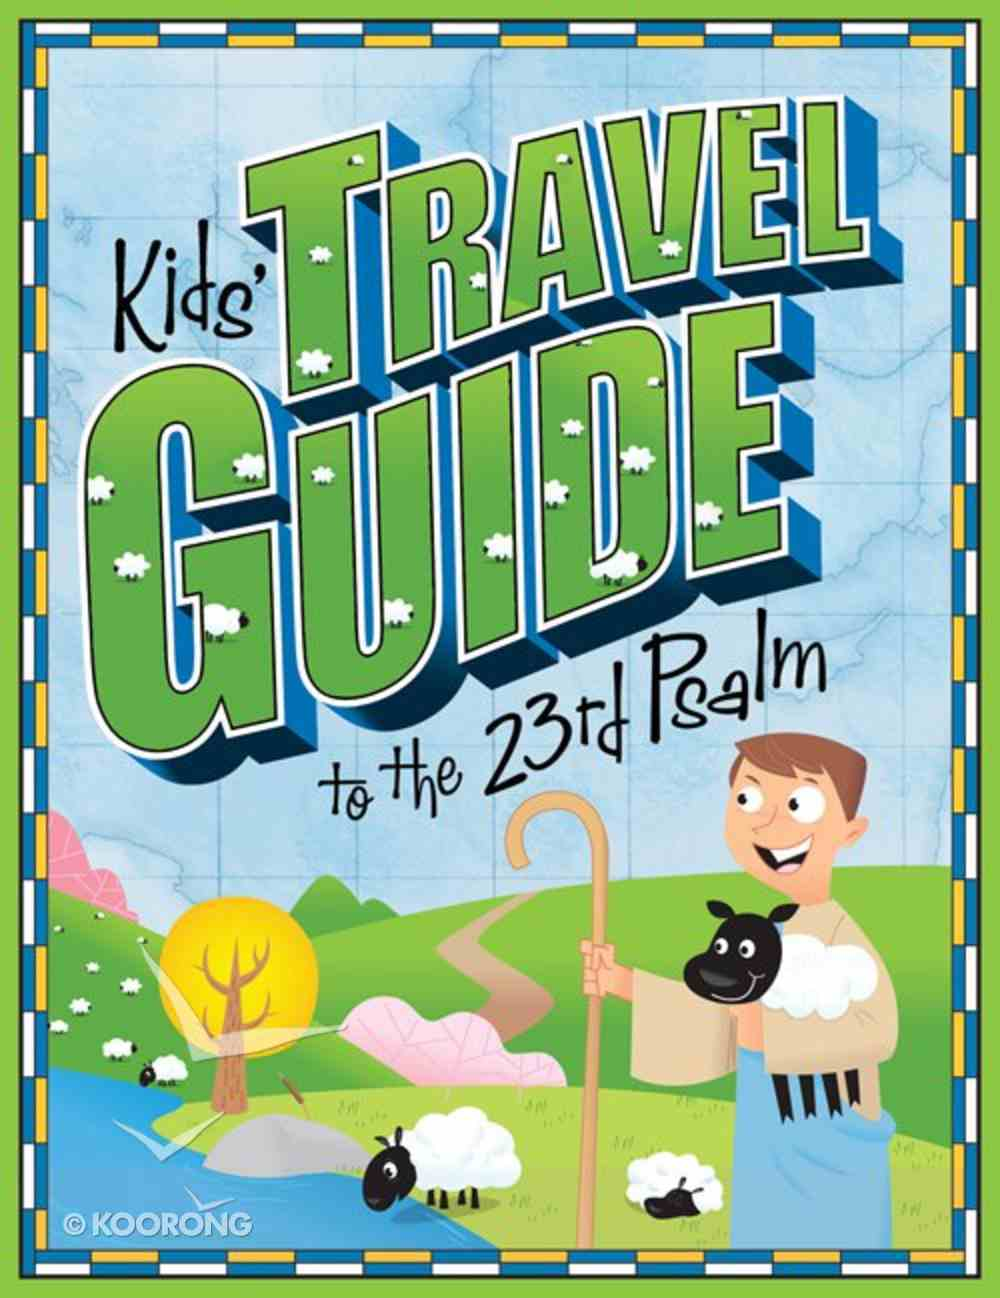 Kids' Travel Guide to the 23Rd Psalm Paperback